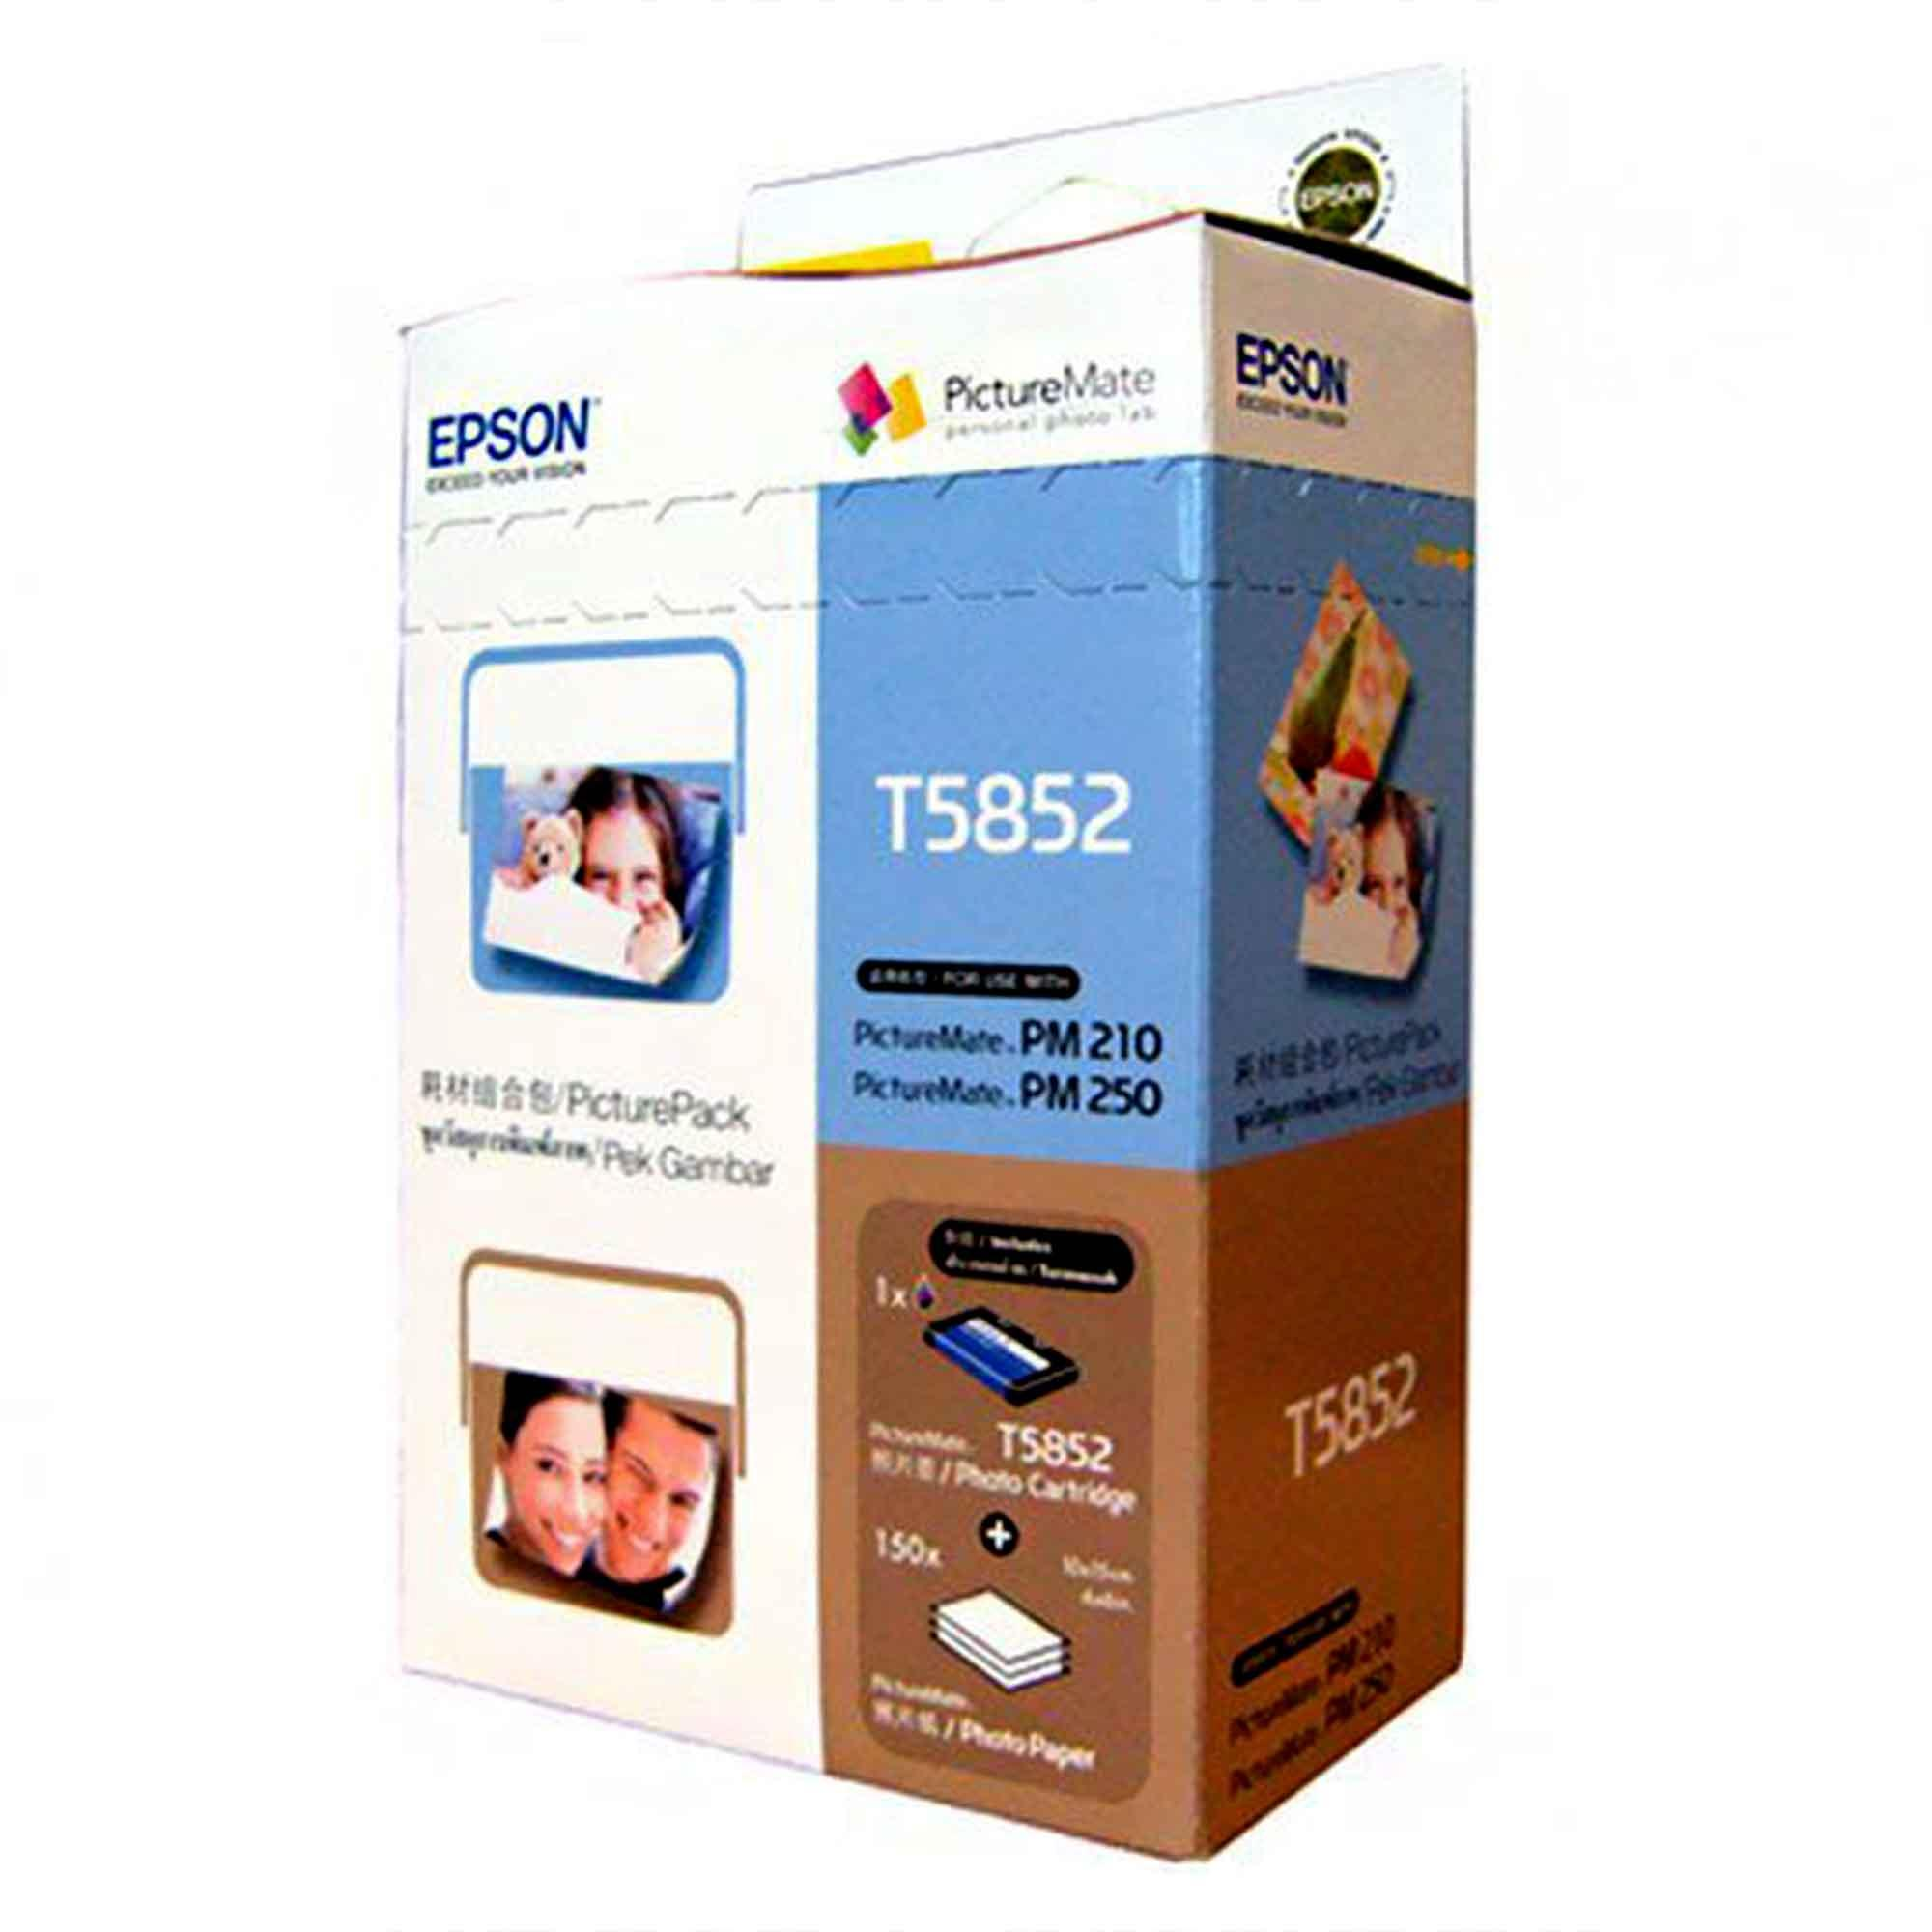 Epson Philippines Ink Cartridges For Sale Prices Reviews Lazada Original Tinta Botol Set T6641 T6644 T5852 T 5852 And Paper Cartridge Compatible Picturemate Printers